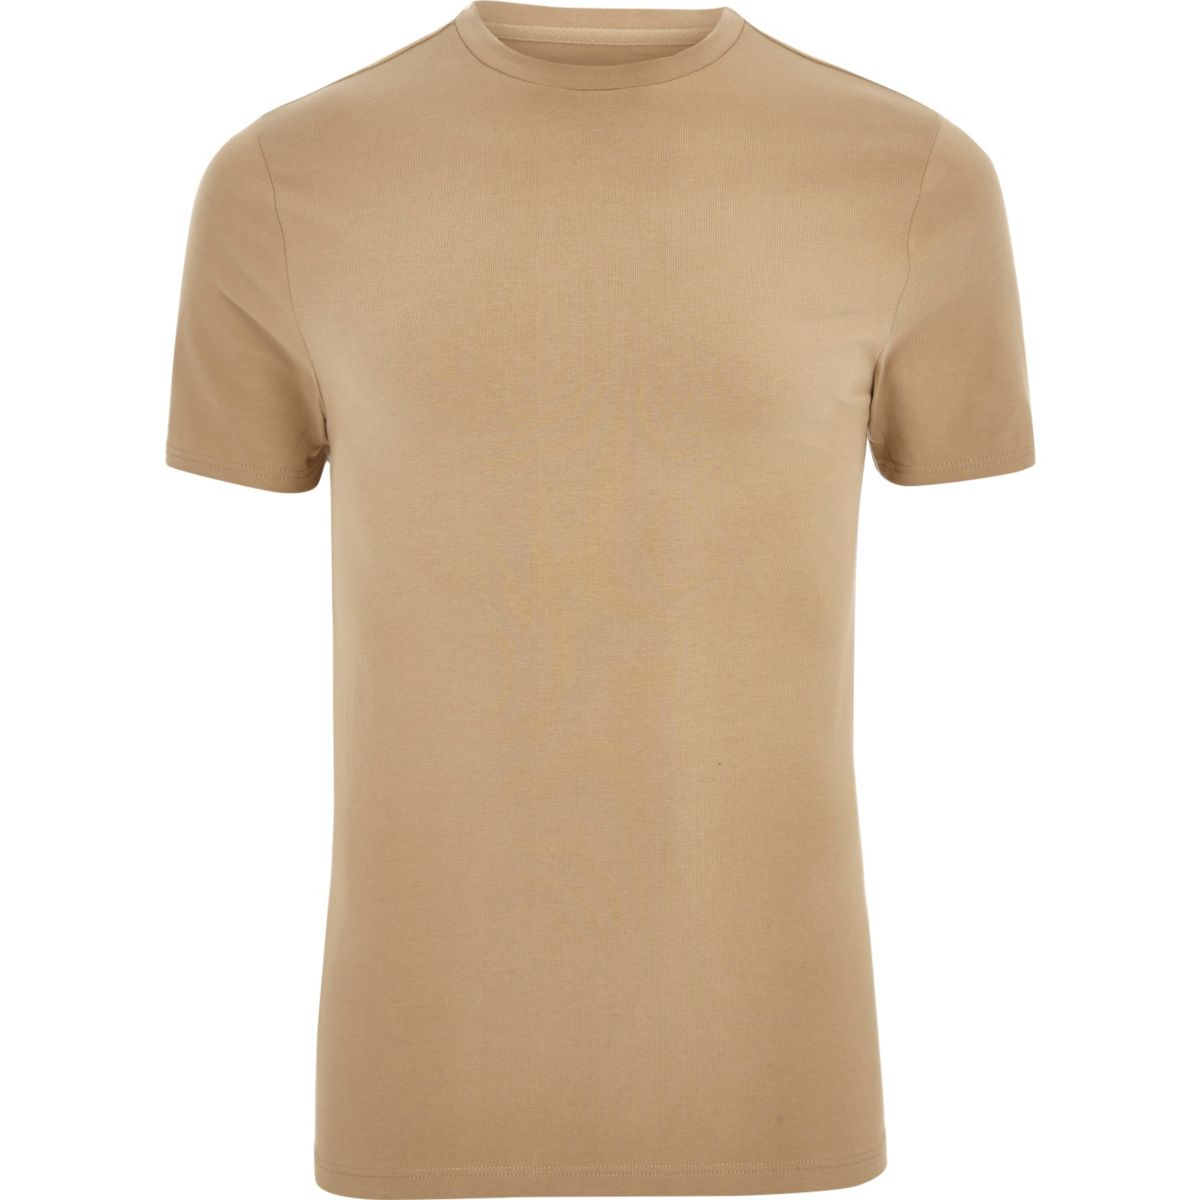 Light brown muscle fit T-shirt